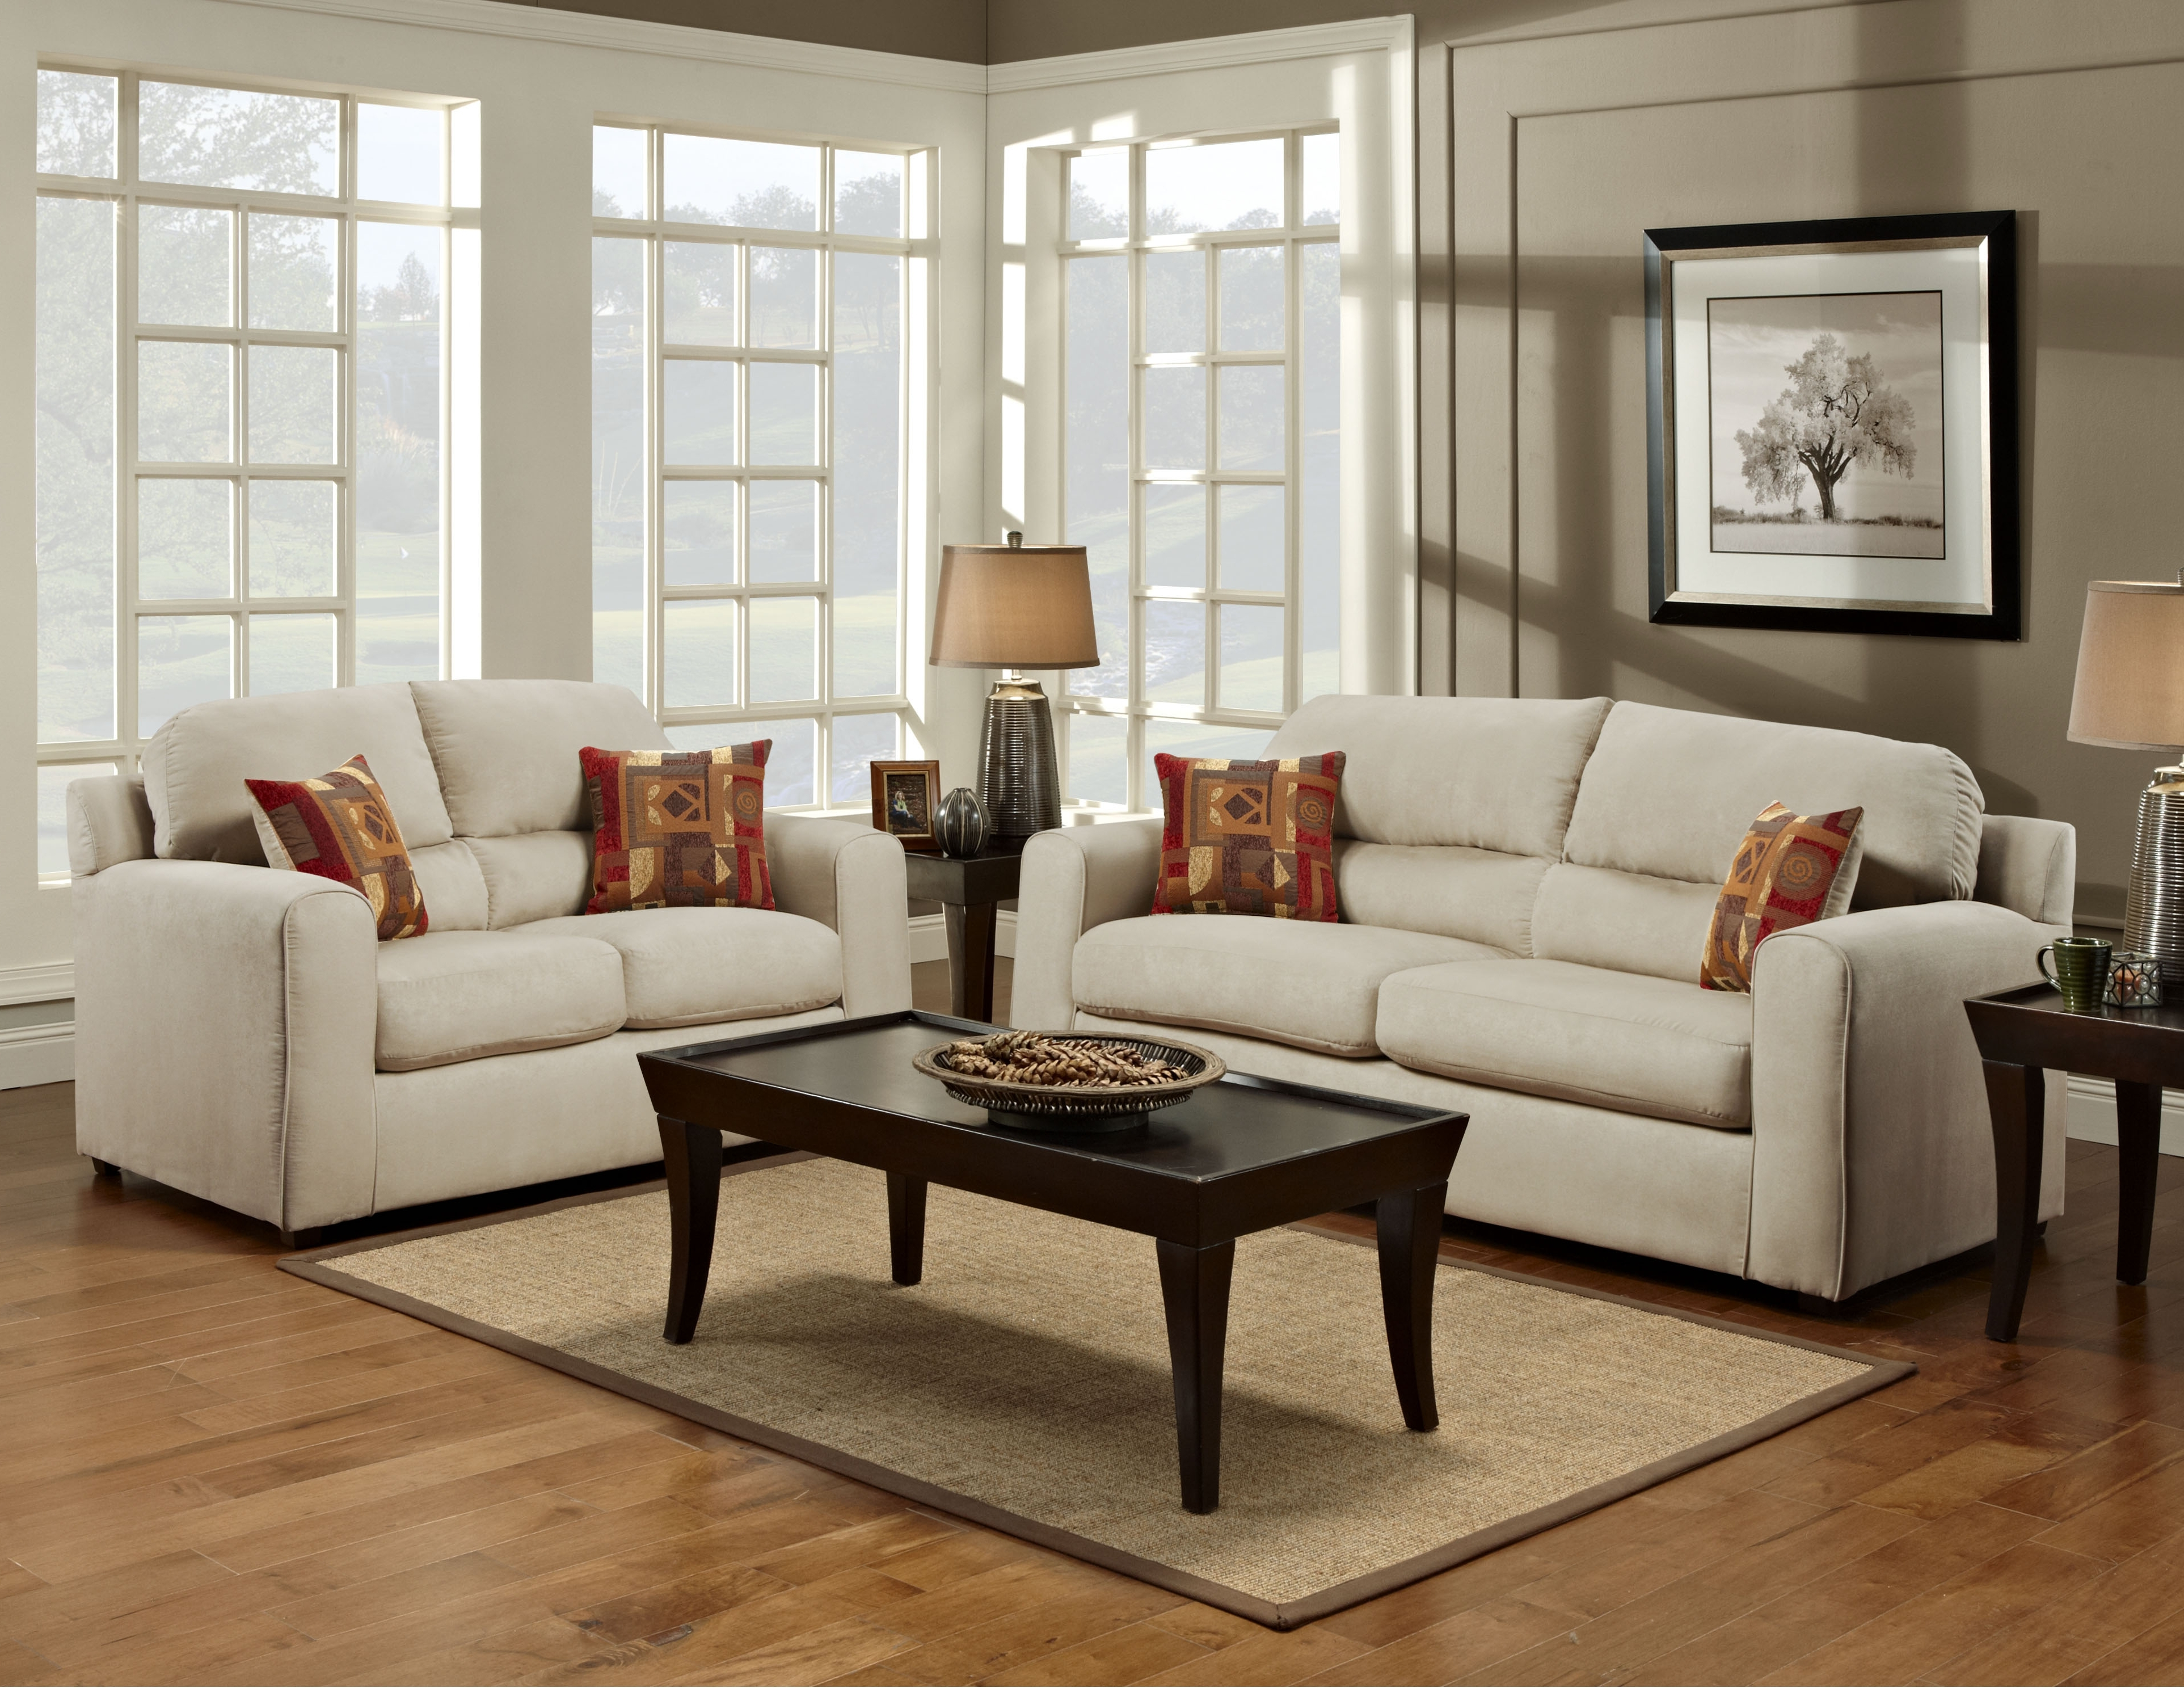 Furniture: Miraculous Nashville Furniture With Nice Design For With Favorite Murfreesboro Tn Sectional Sofas (View 14 of 15)